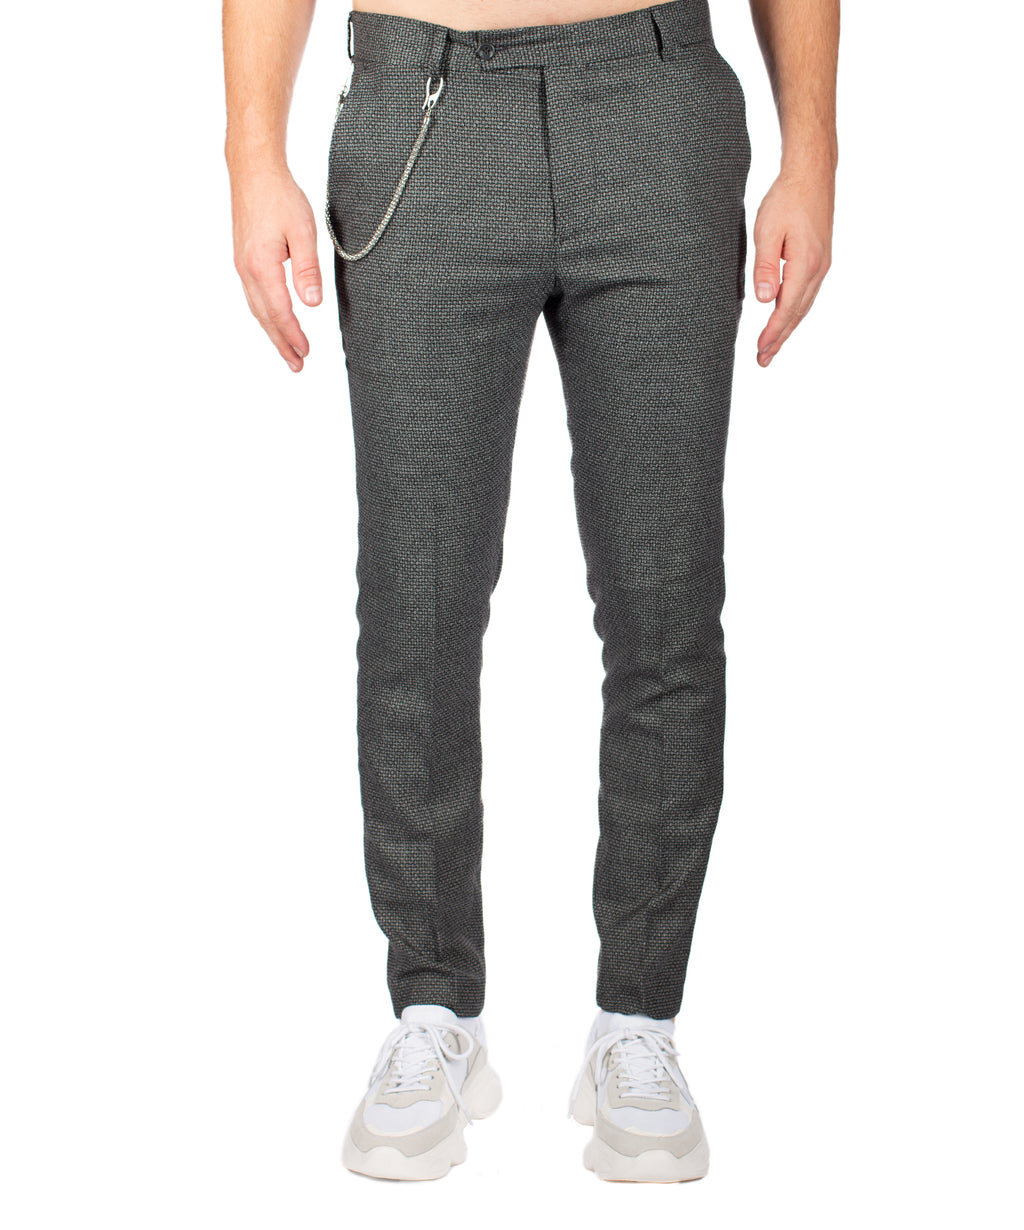 CASUAL PANTS DARK GREY - Vaarora